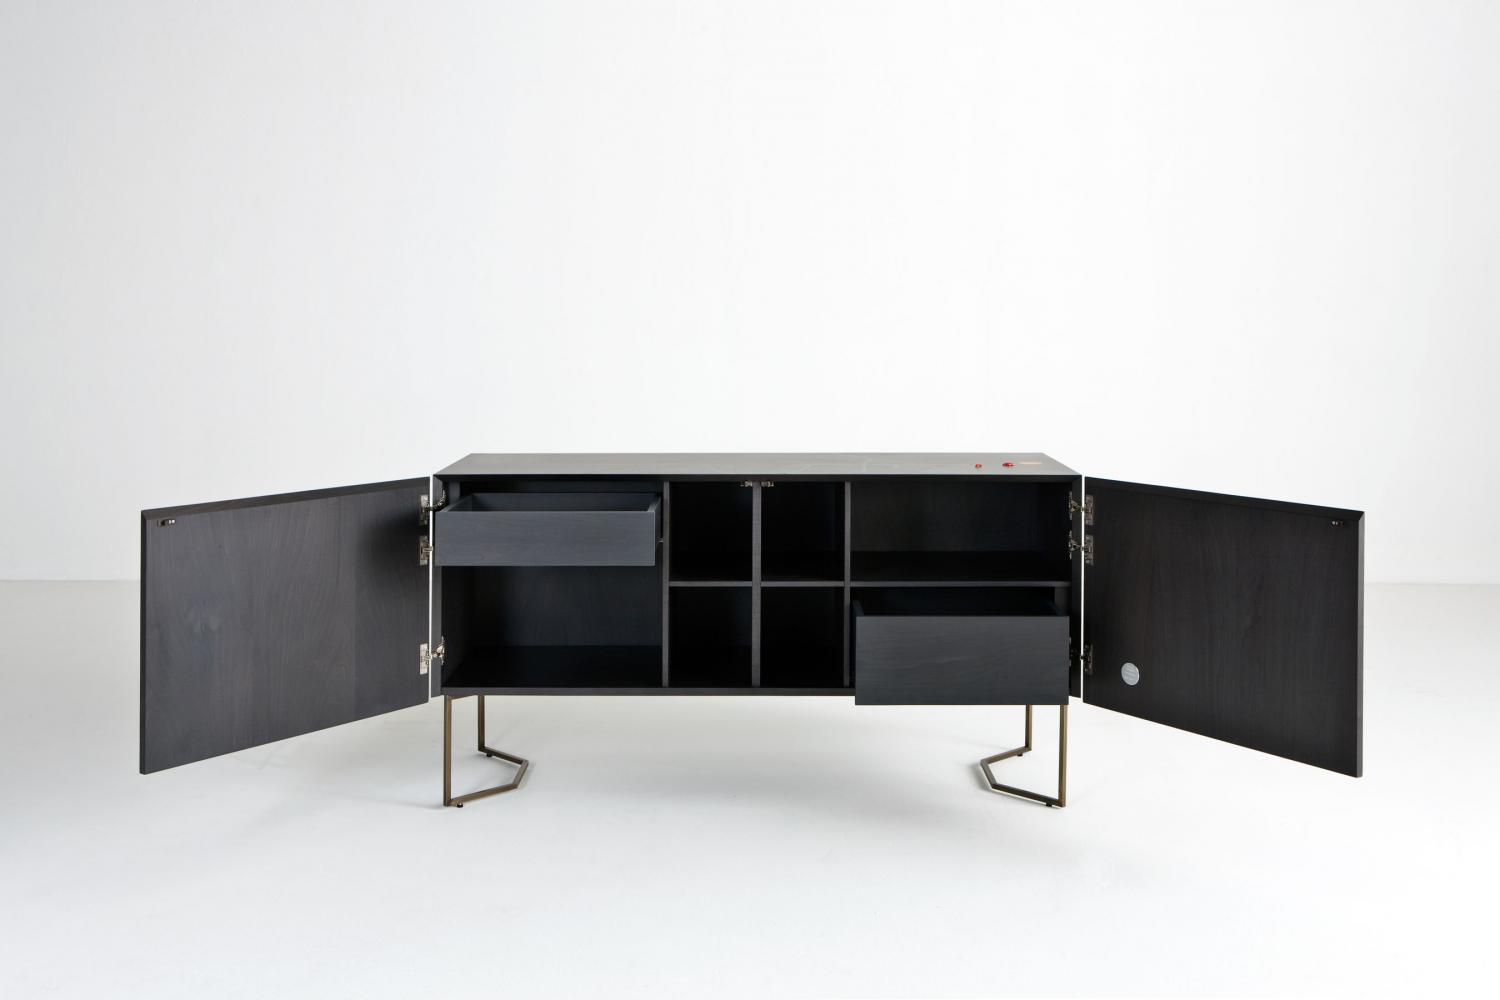 Modern limited edition sideboard in wood with inlays and brass legs designed by Fausta Squatriti for luxury home.